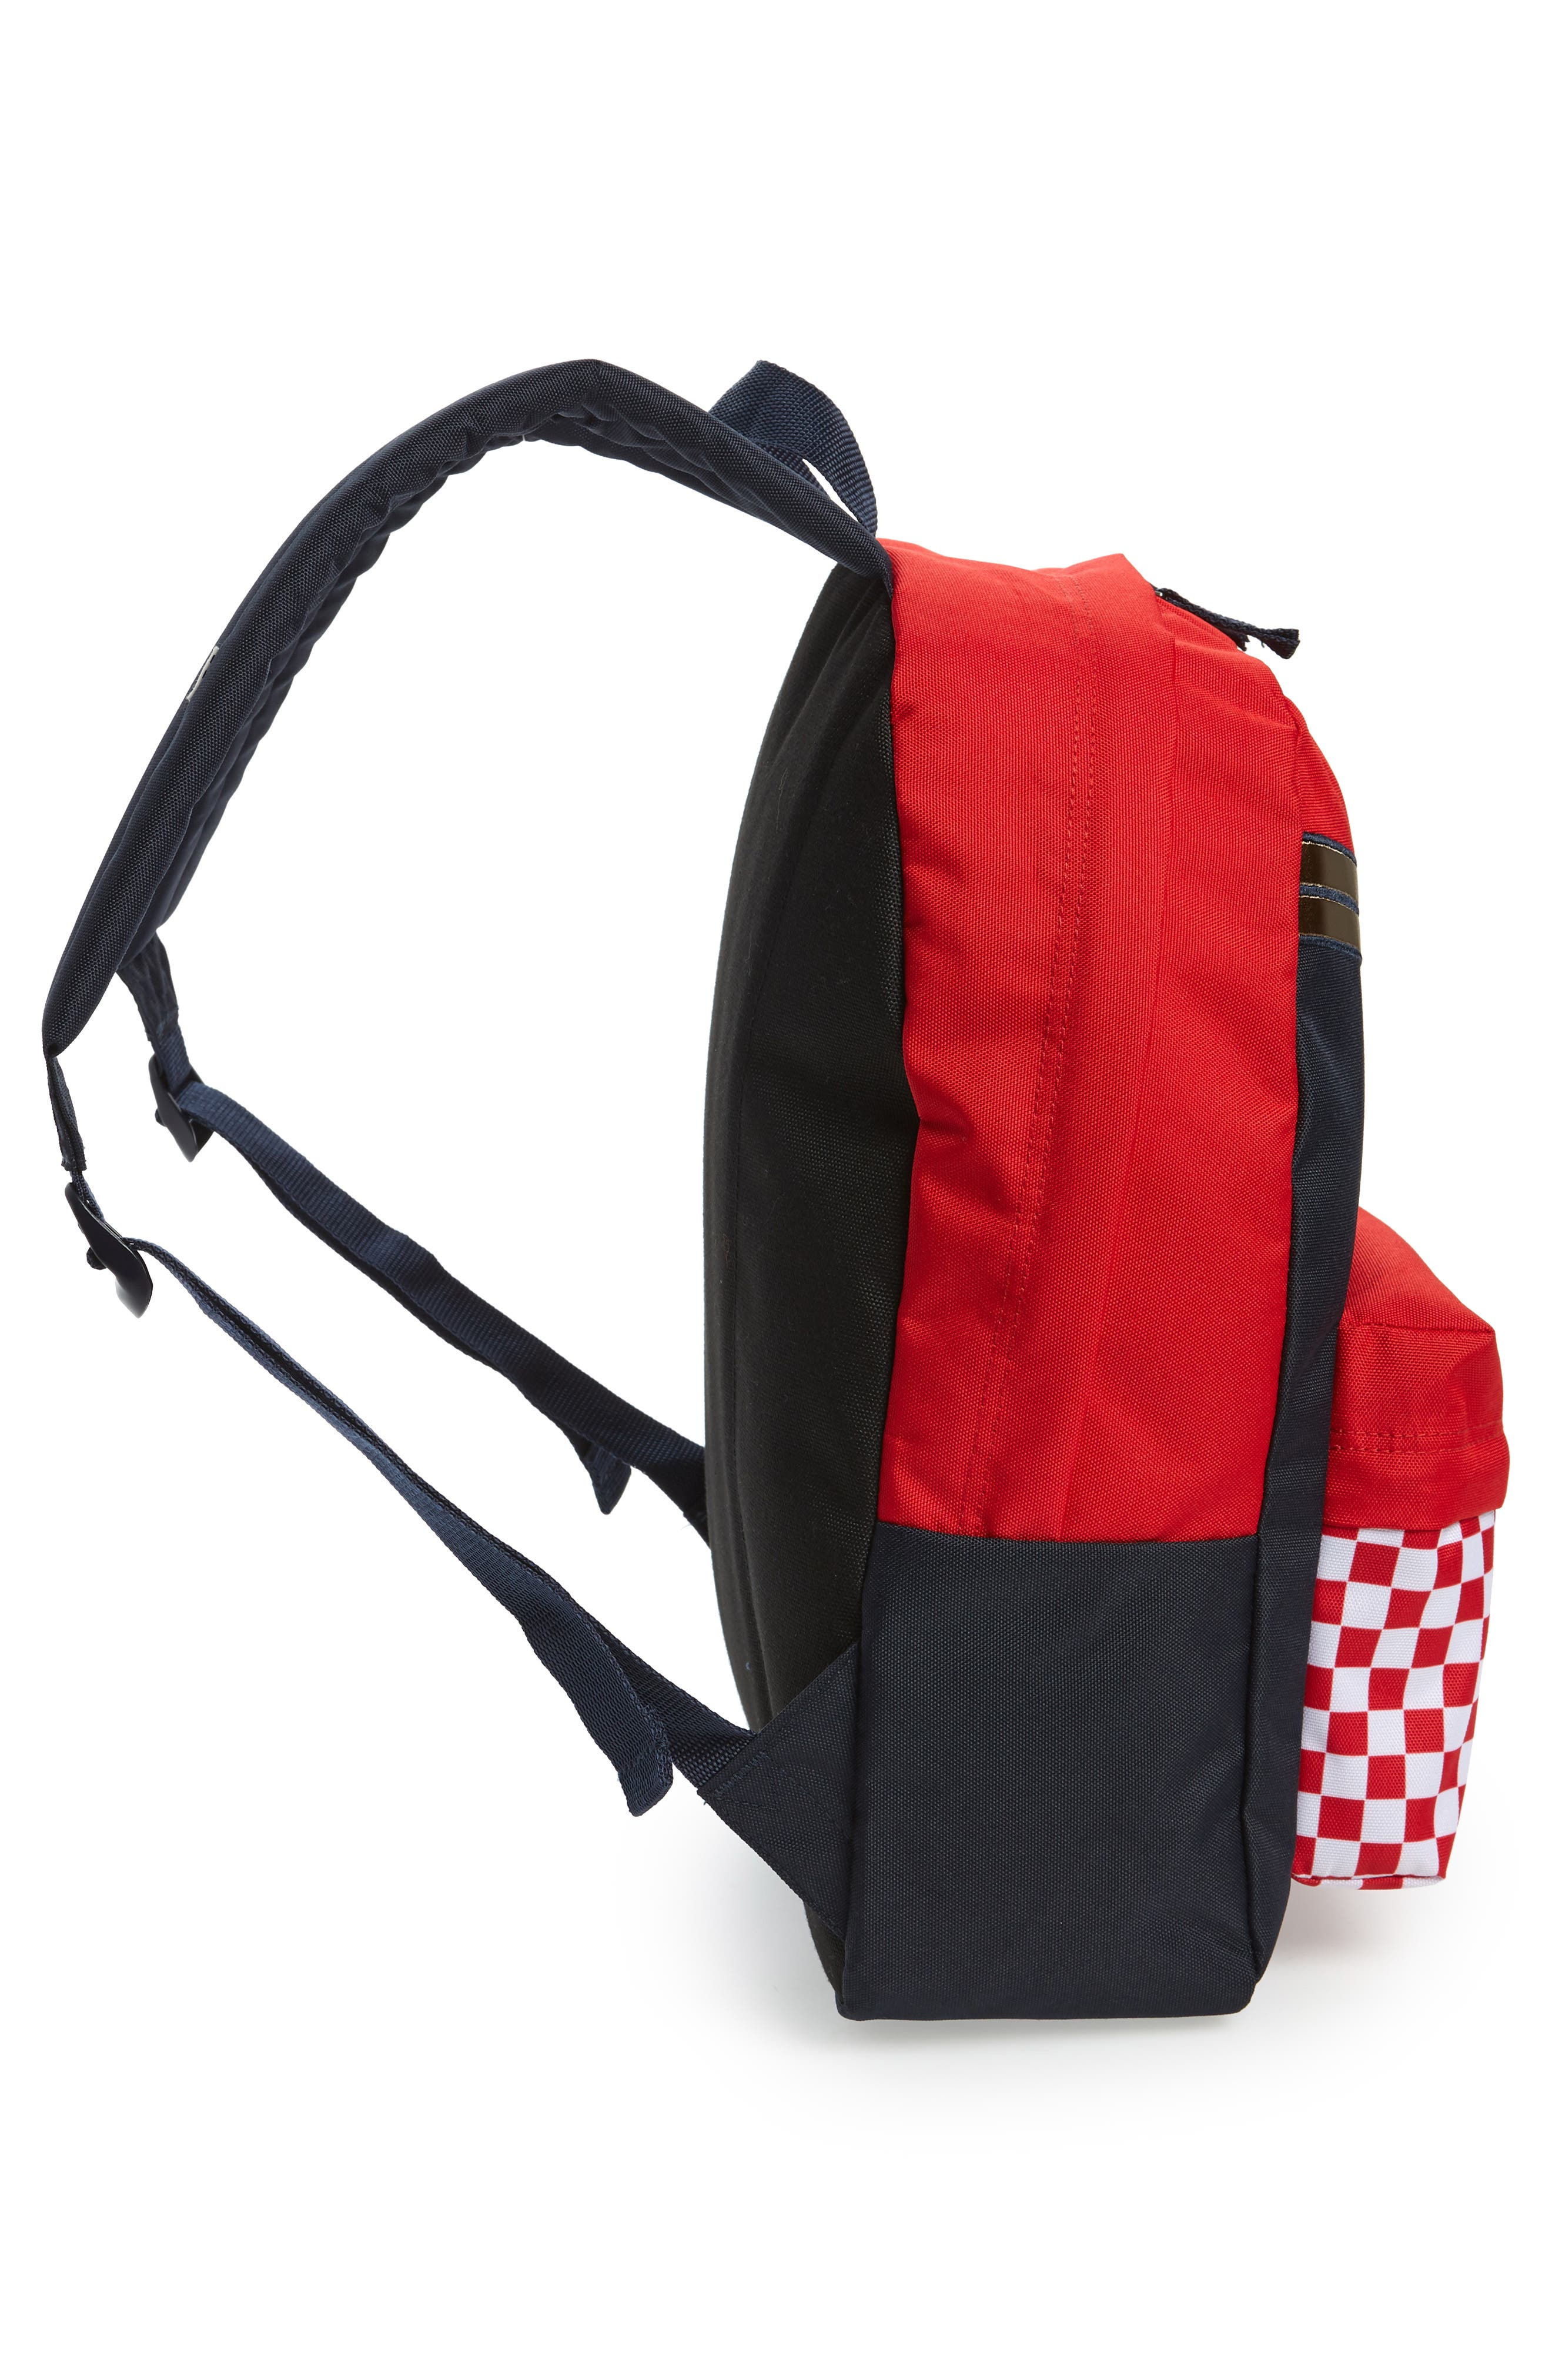 x Marvel<sup>®</sup> Captain Marvel Realm Backpack,                             Alternate thumbnail 2, color,                             Racing Red